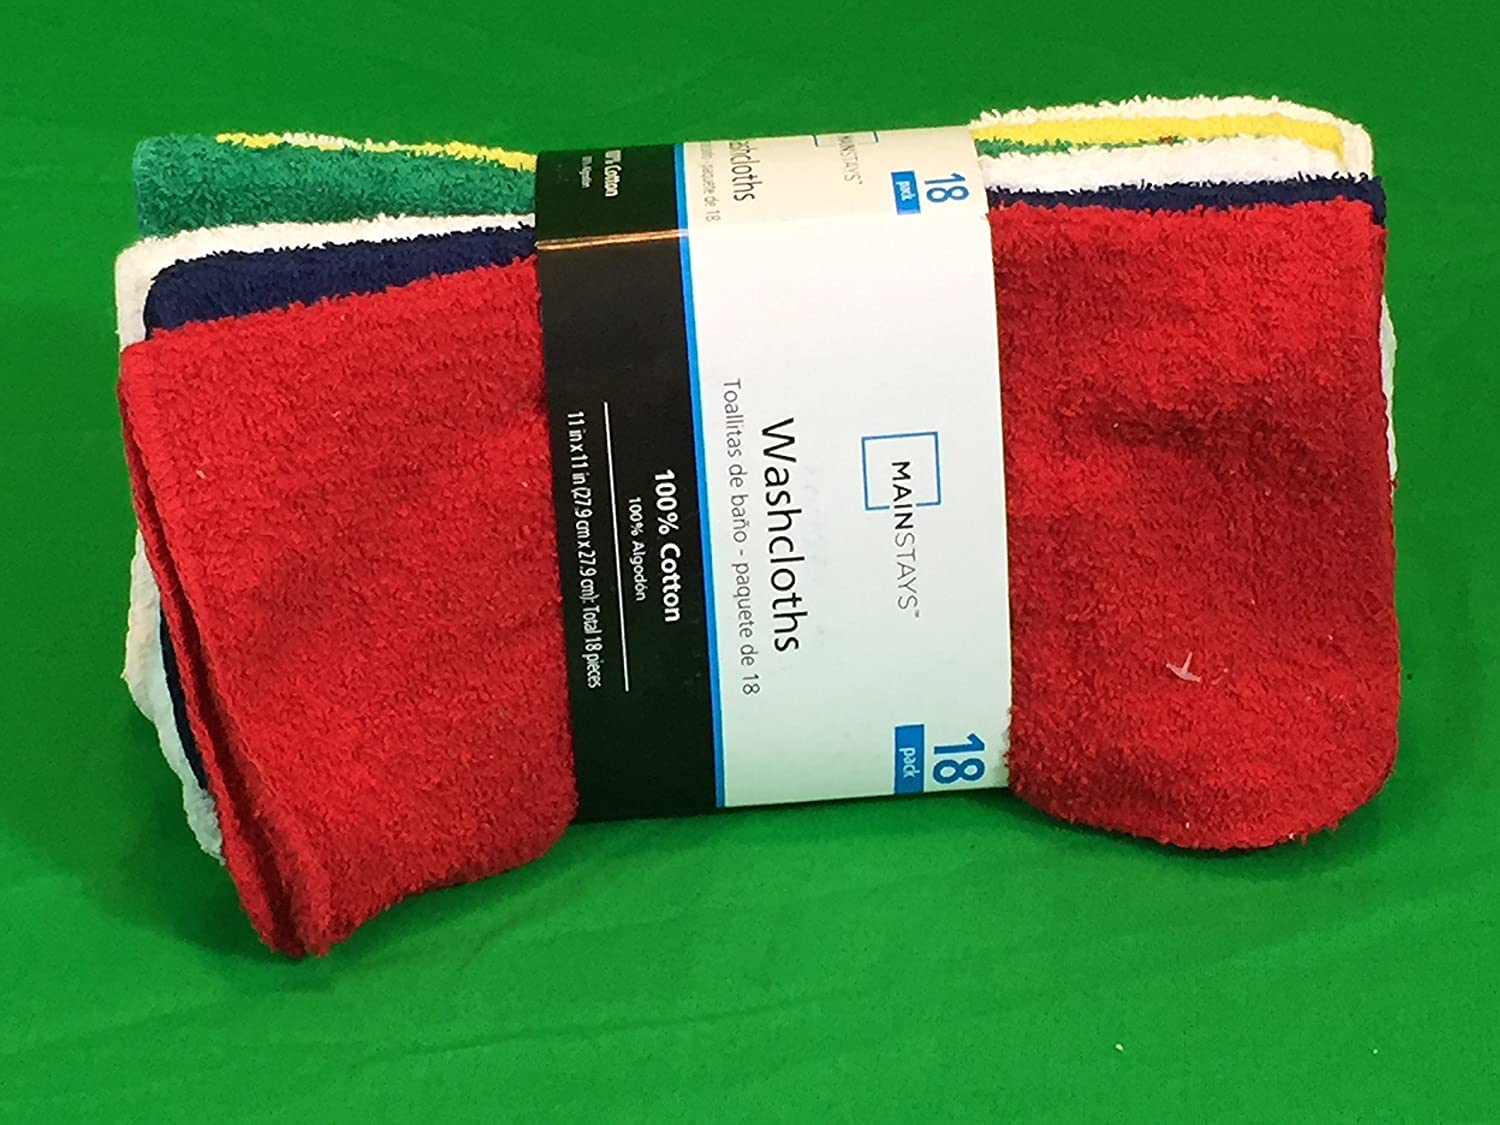 Amazon.com: Mainstays 18 Pack Washcloths - Primary Colors: Home & Kitchen